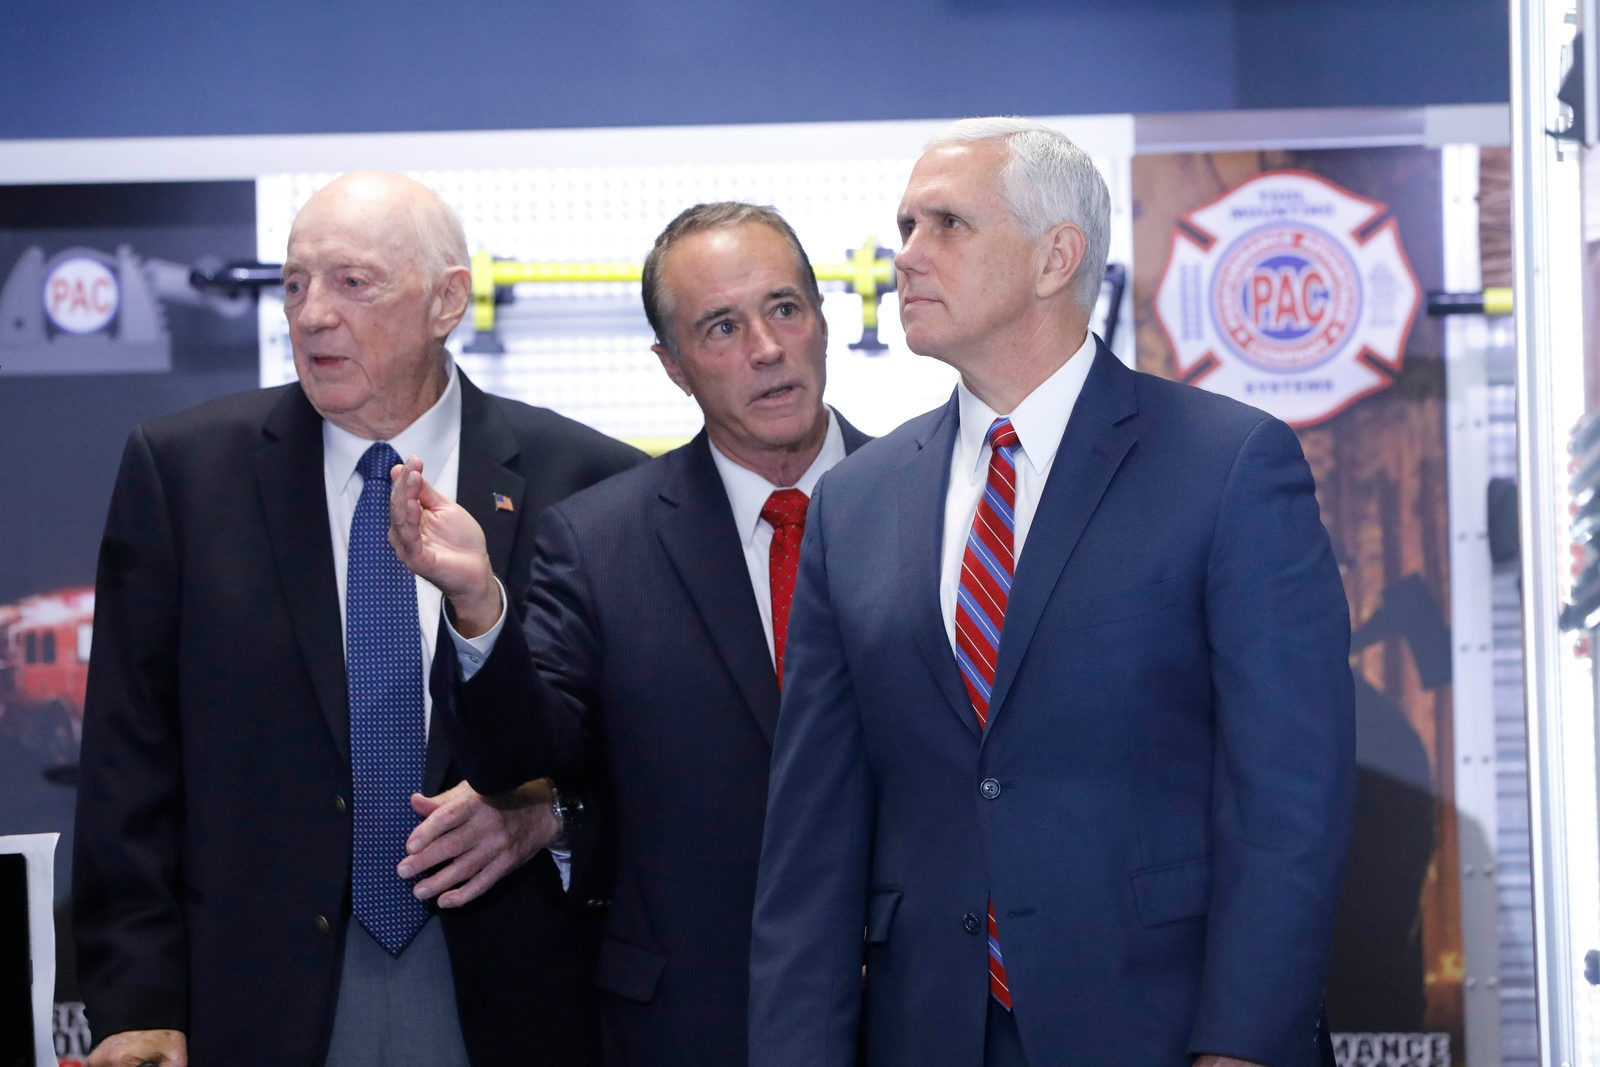 Vice President Pence tours Performance Advantage Company in Lancaster with Rep. Chris Collins, center and company founder Dick Young, Tuesday, Oct. 17, 2017.